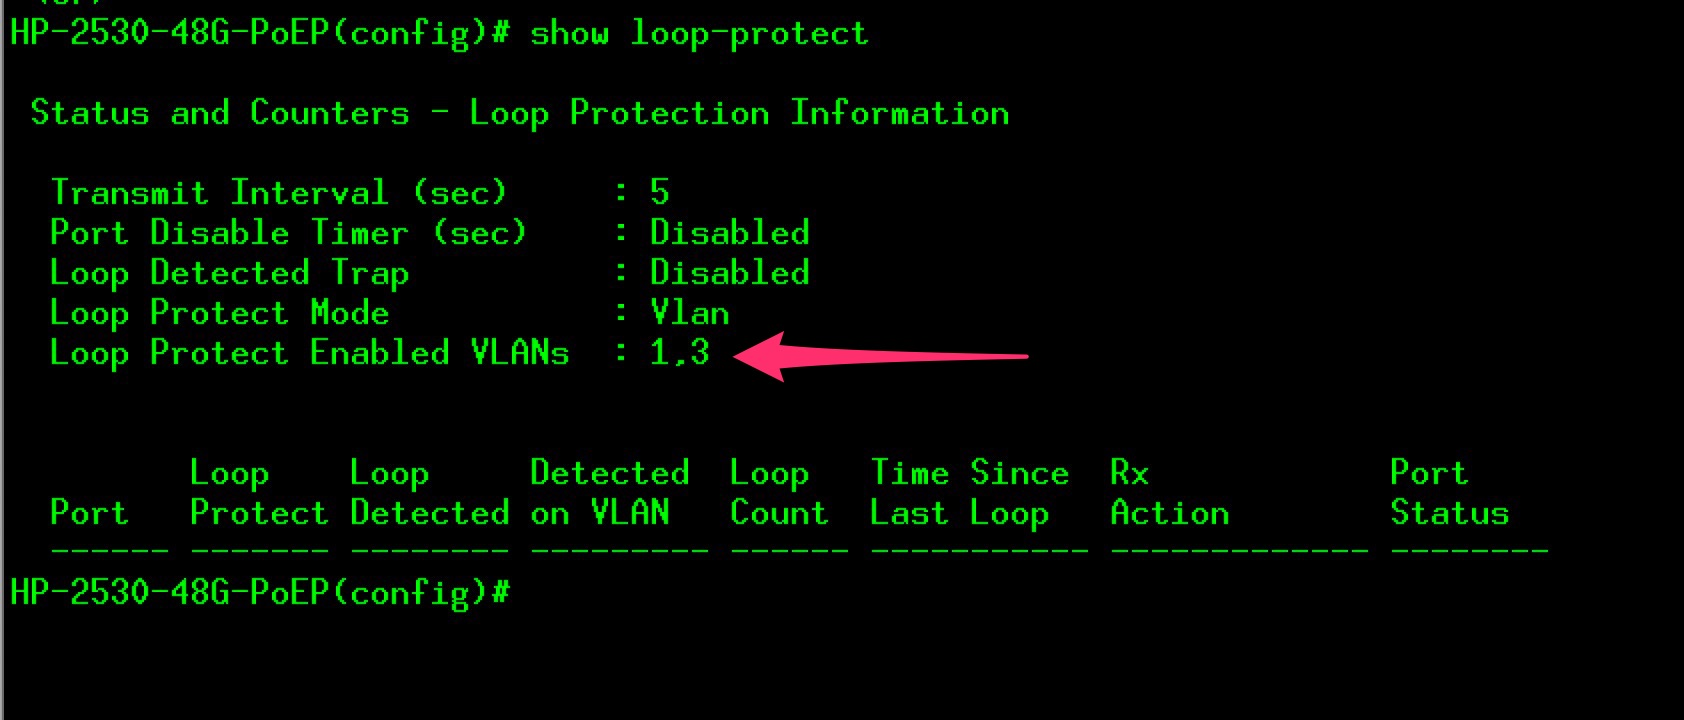 Hpe Aruba and loop-protect | Marco Schiavon